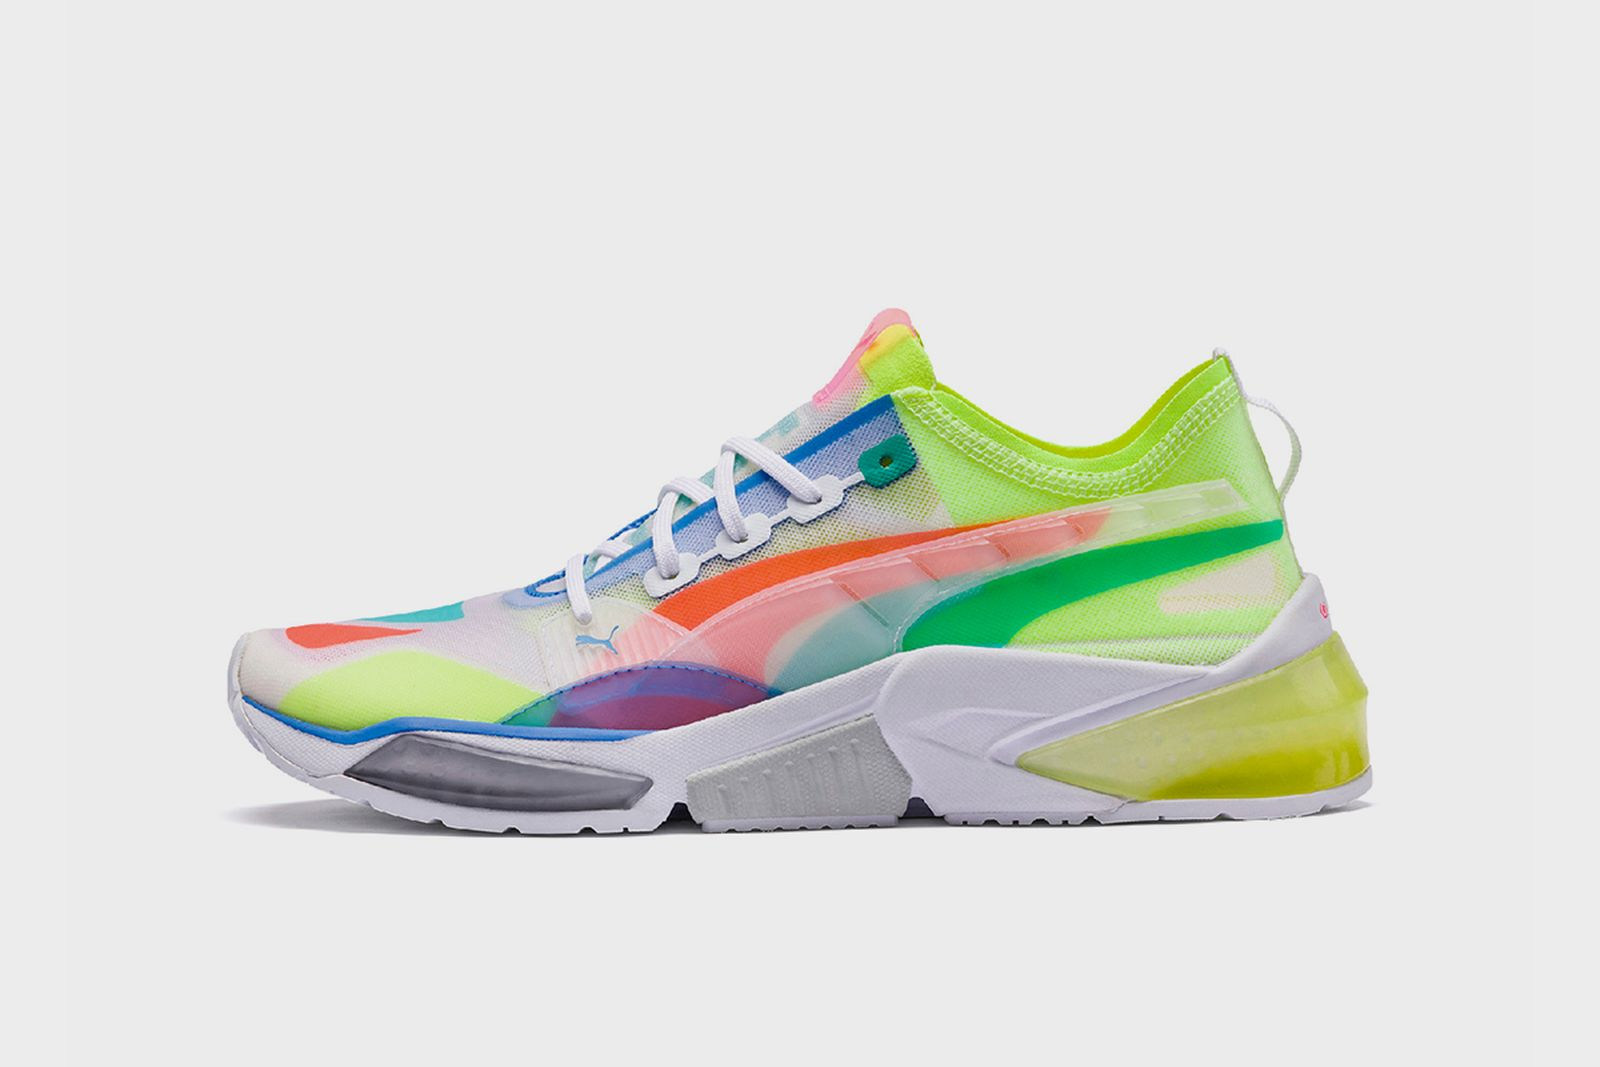 puma lqd cell optic release date price product